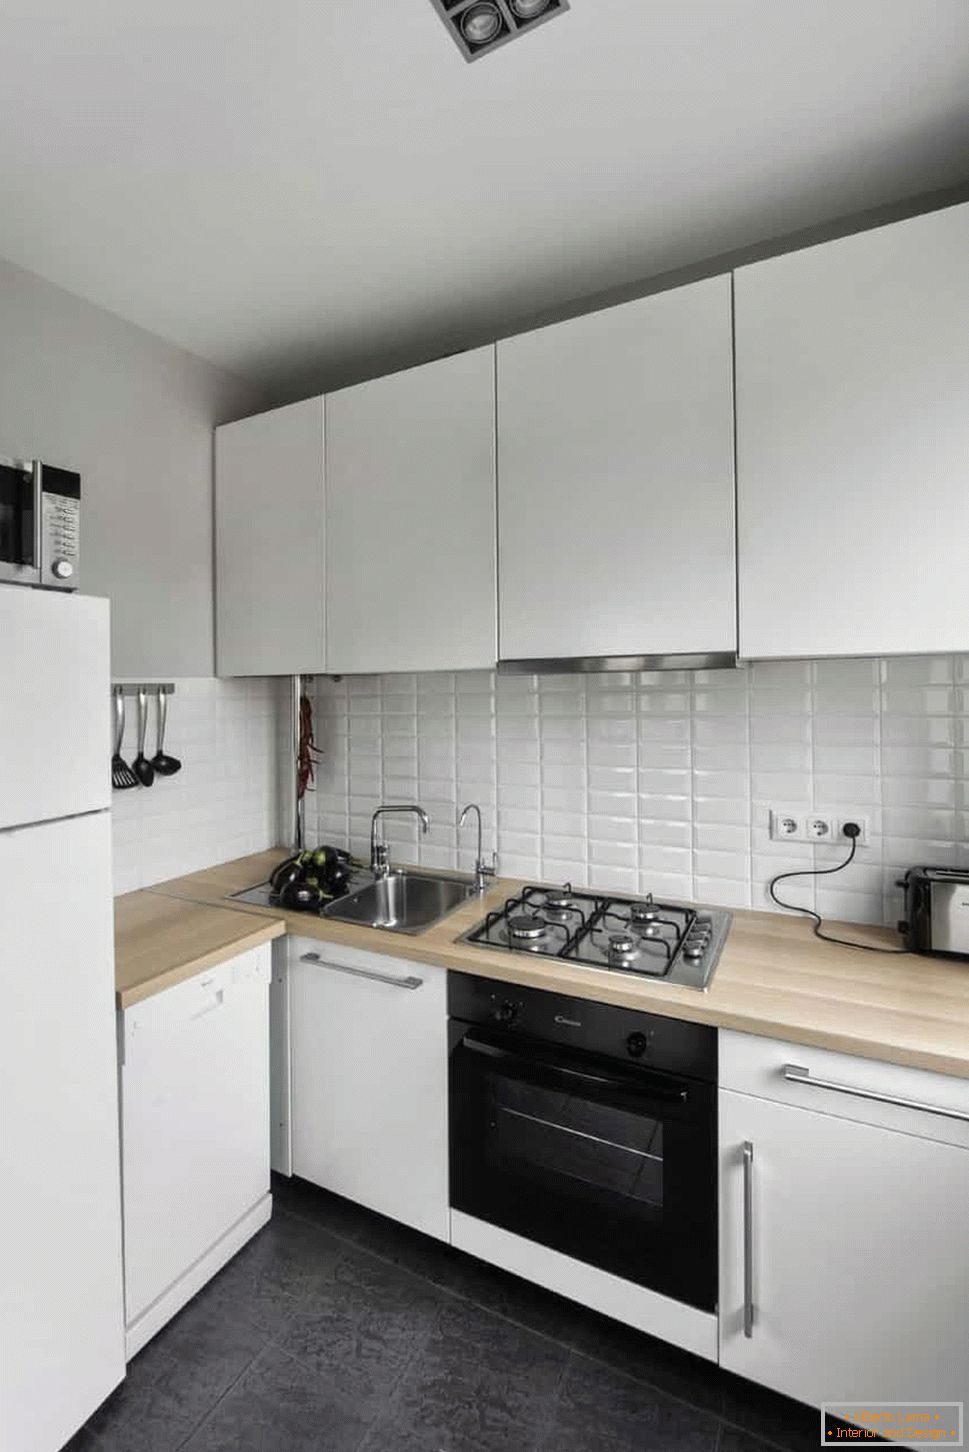 Built-in appliances in the kitchen